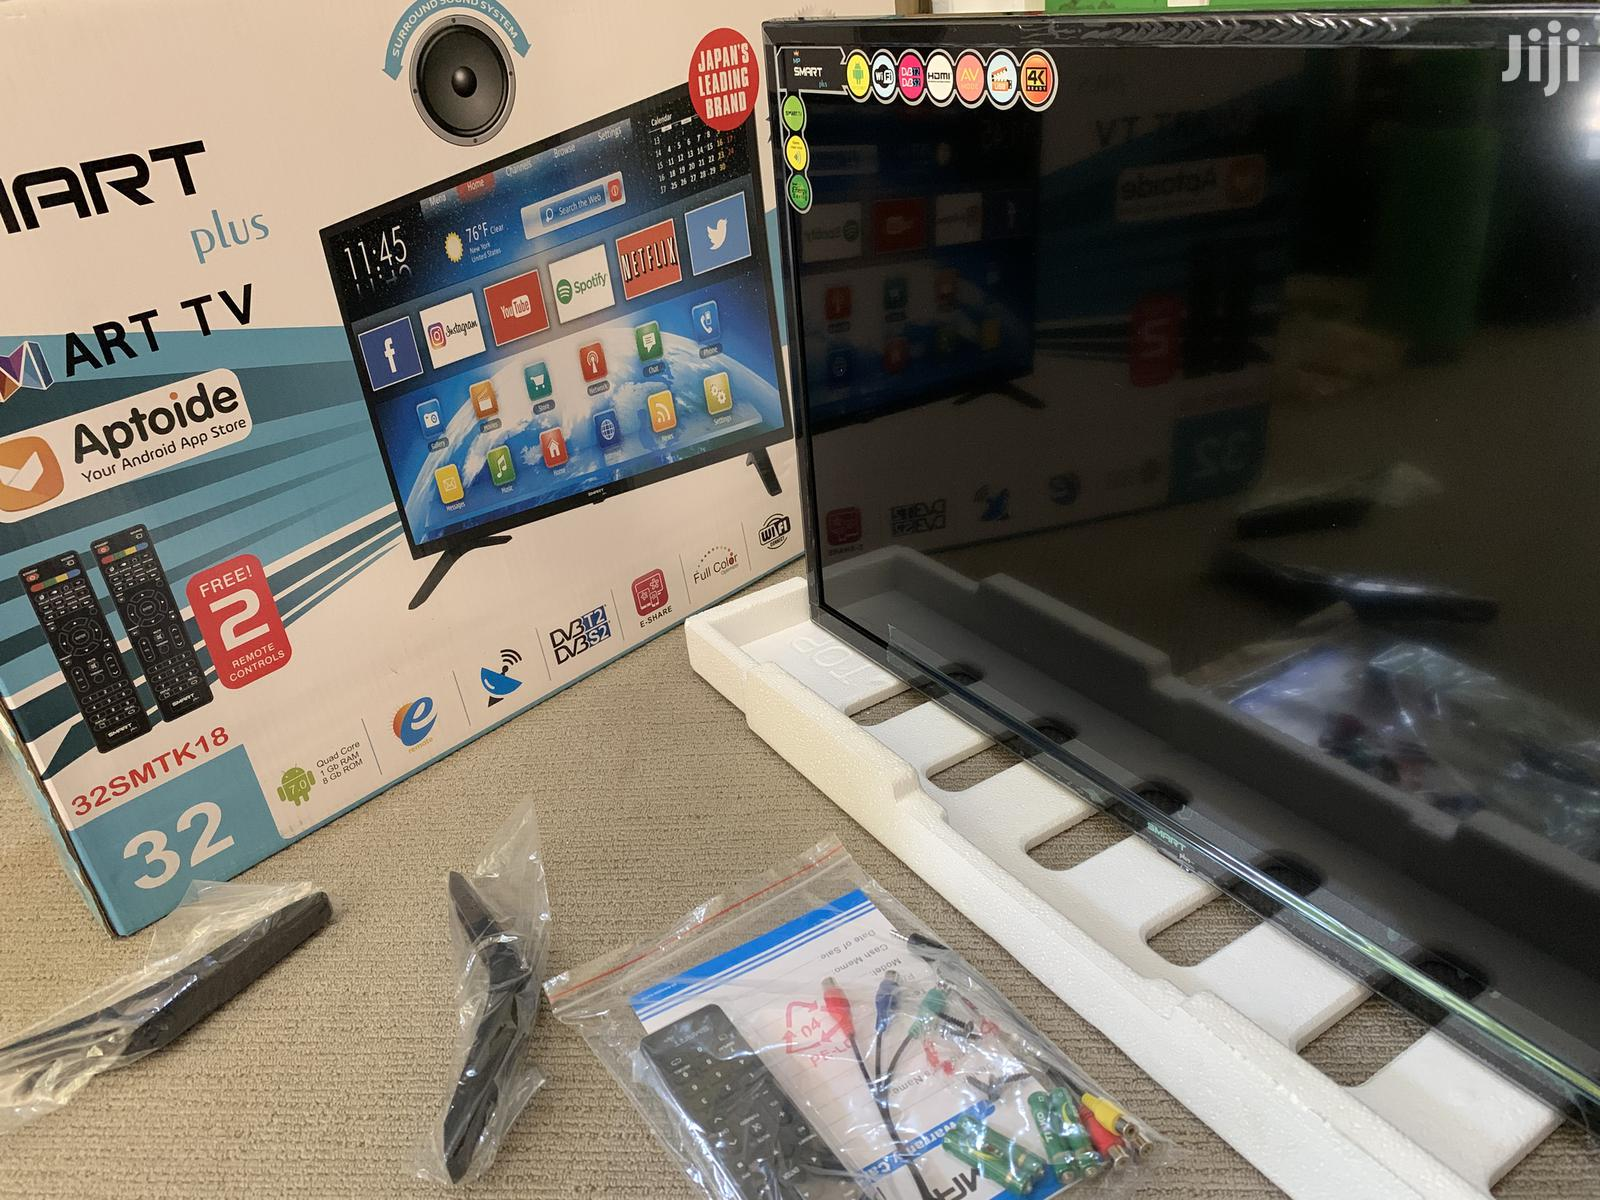 Smart Plus Android TV 32 Inches | TV & DVD Equipment for sale in Kampala, Central Region, Uganda